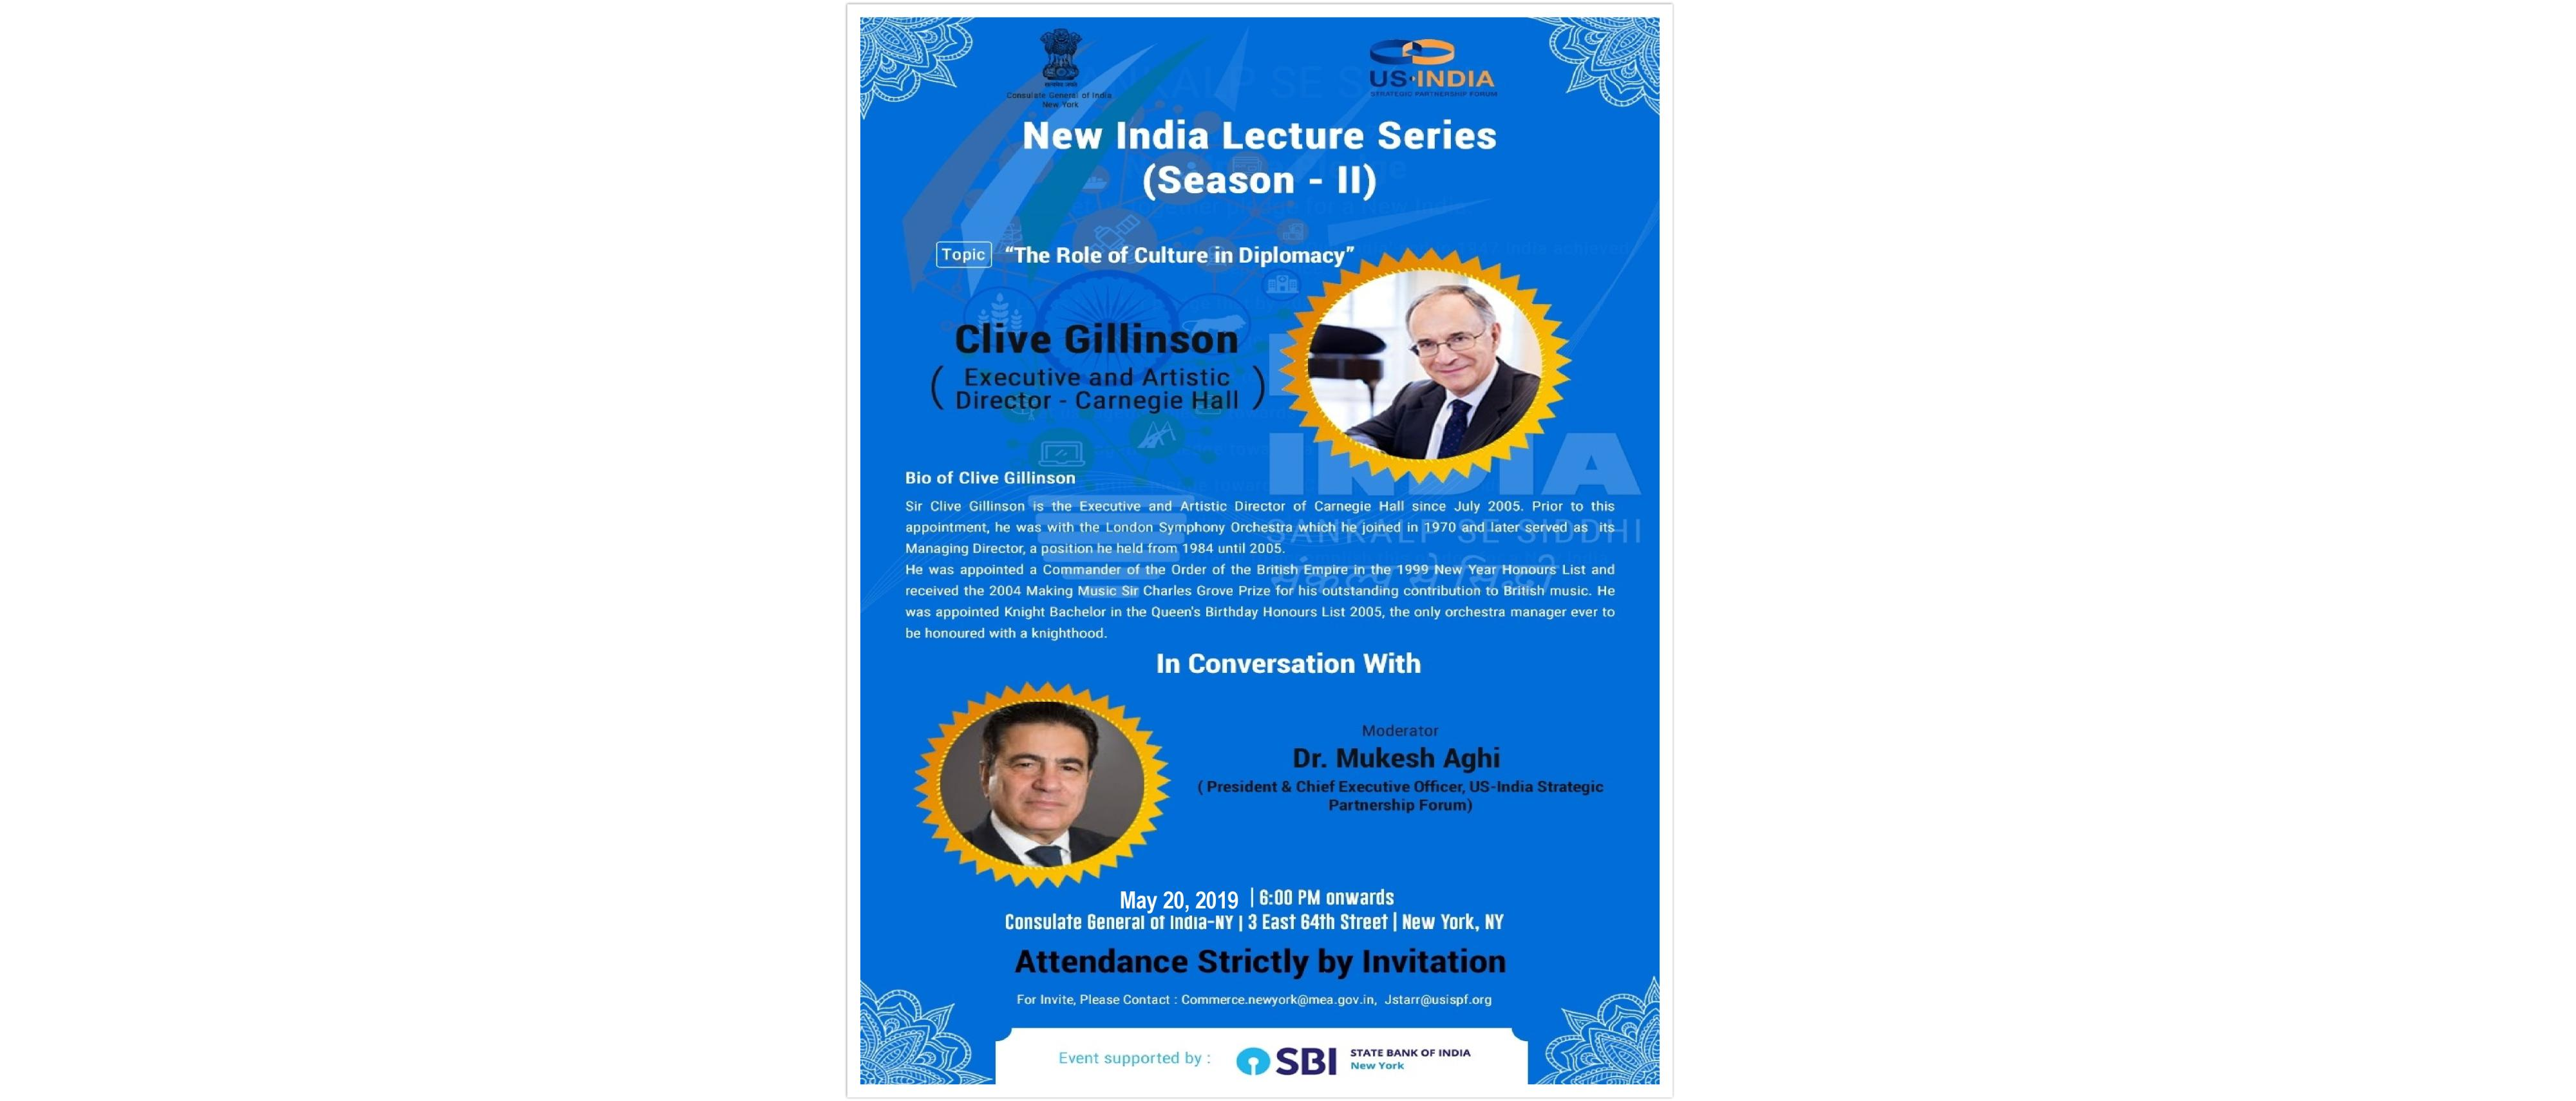 New India Lecture Series (Season II) on May 20, 2019 – Entry Strictly by Invitation Only